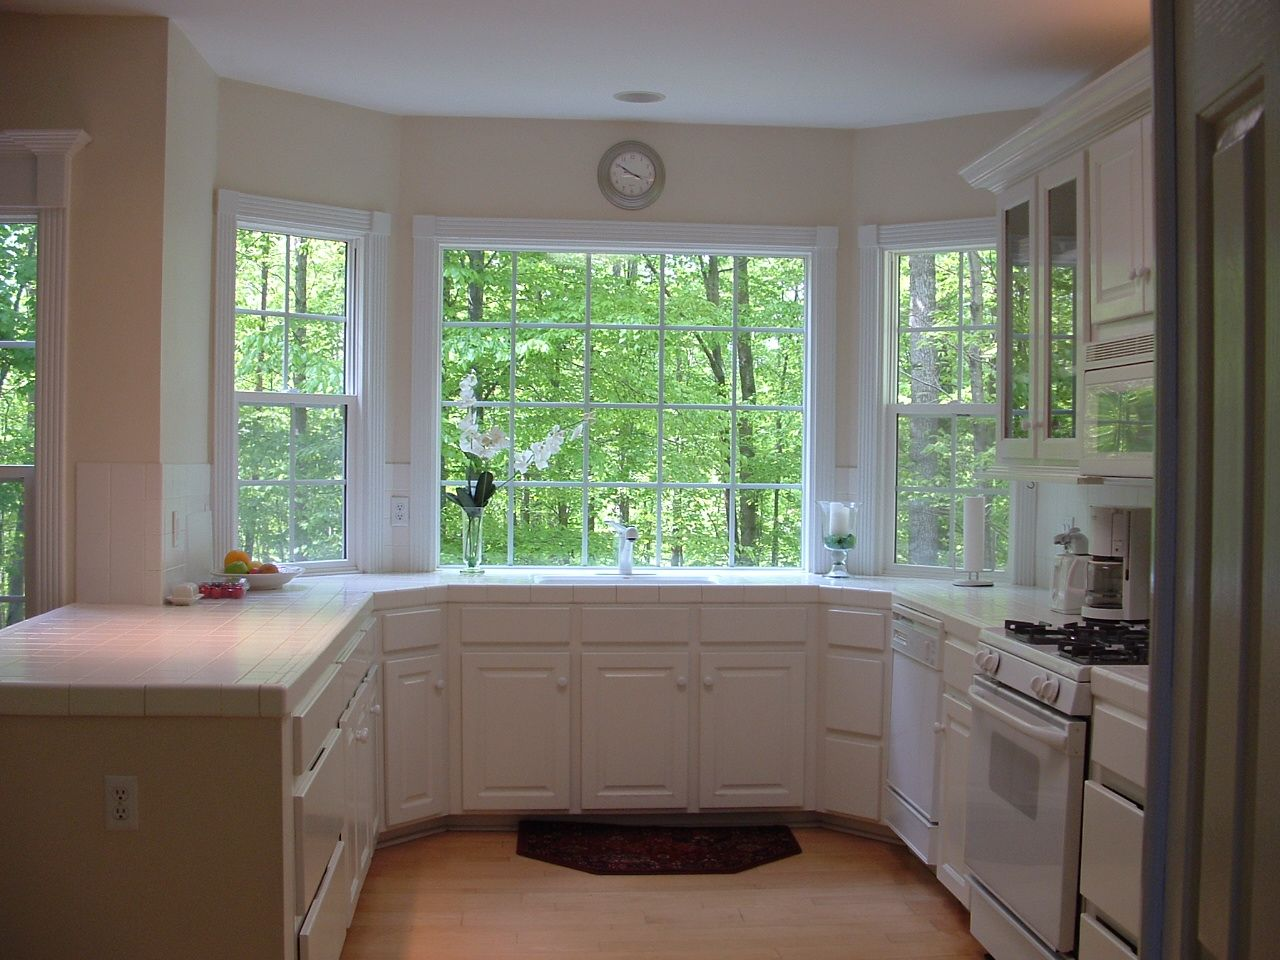 This was our all white kitchen in Virginia The Maple floors warmed